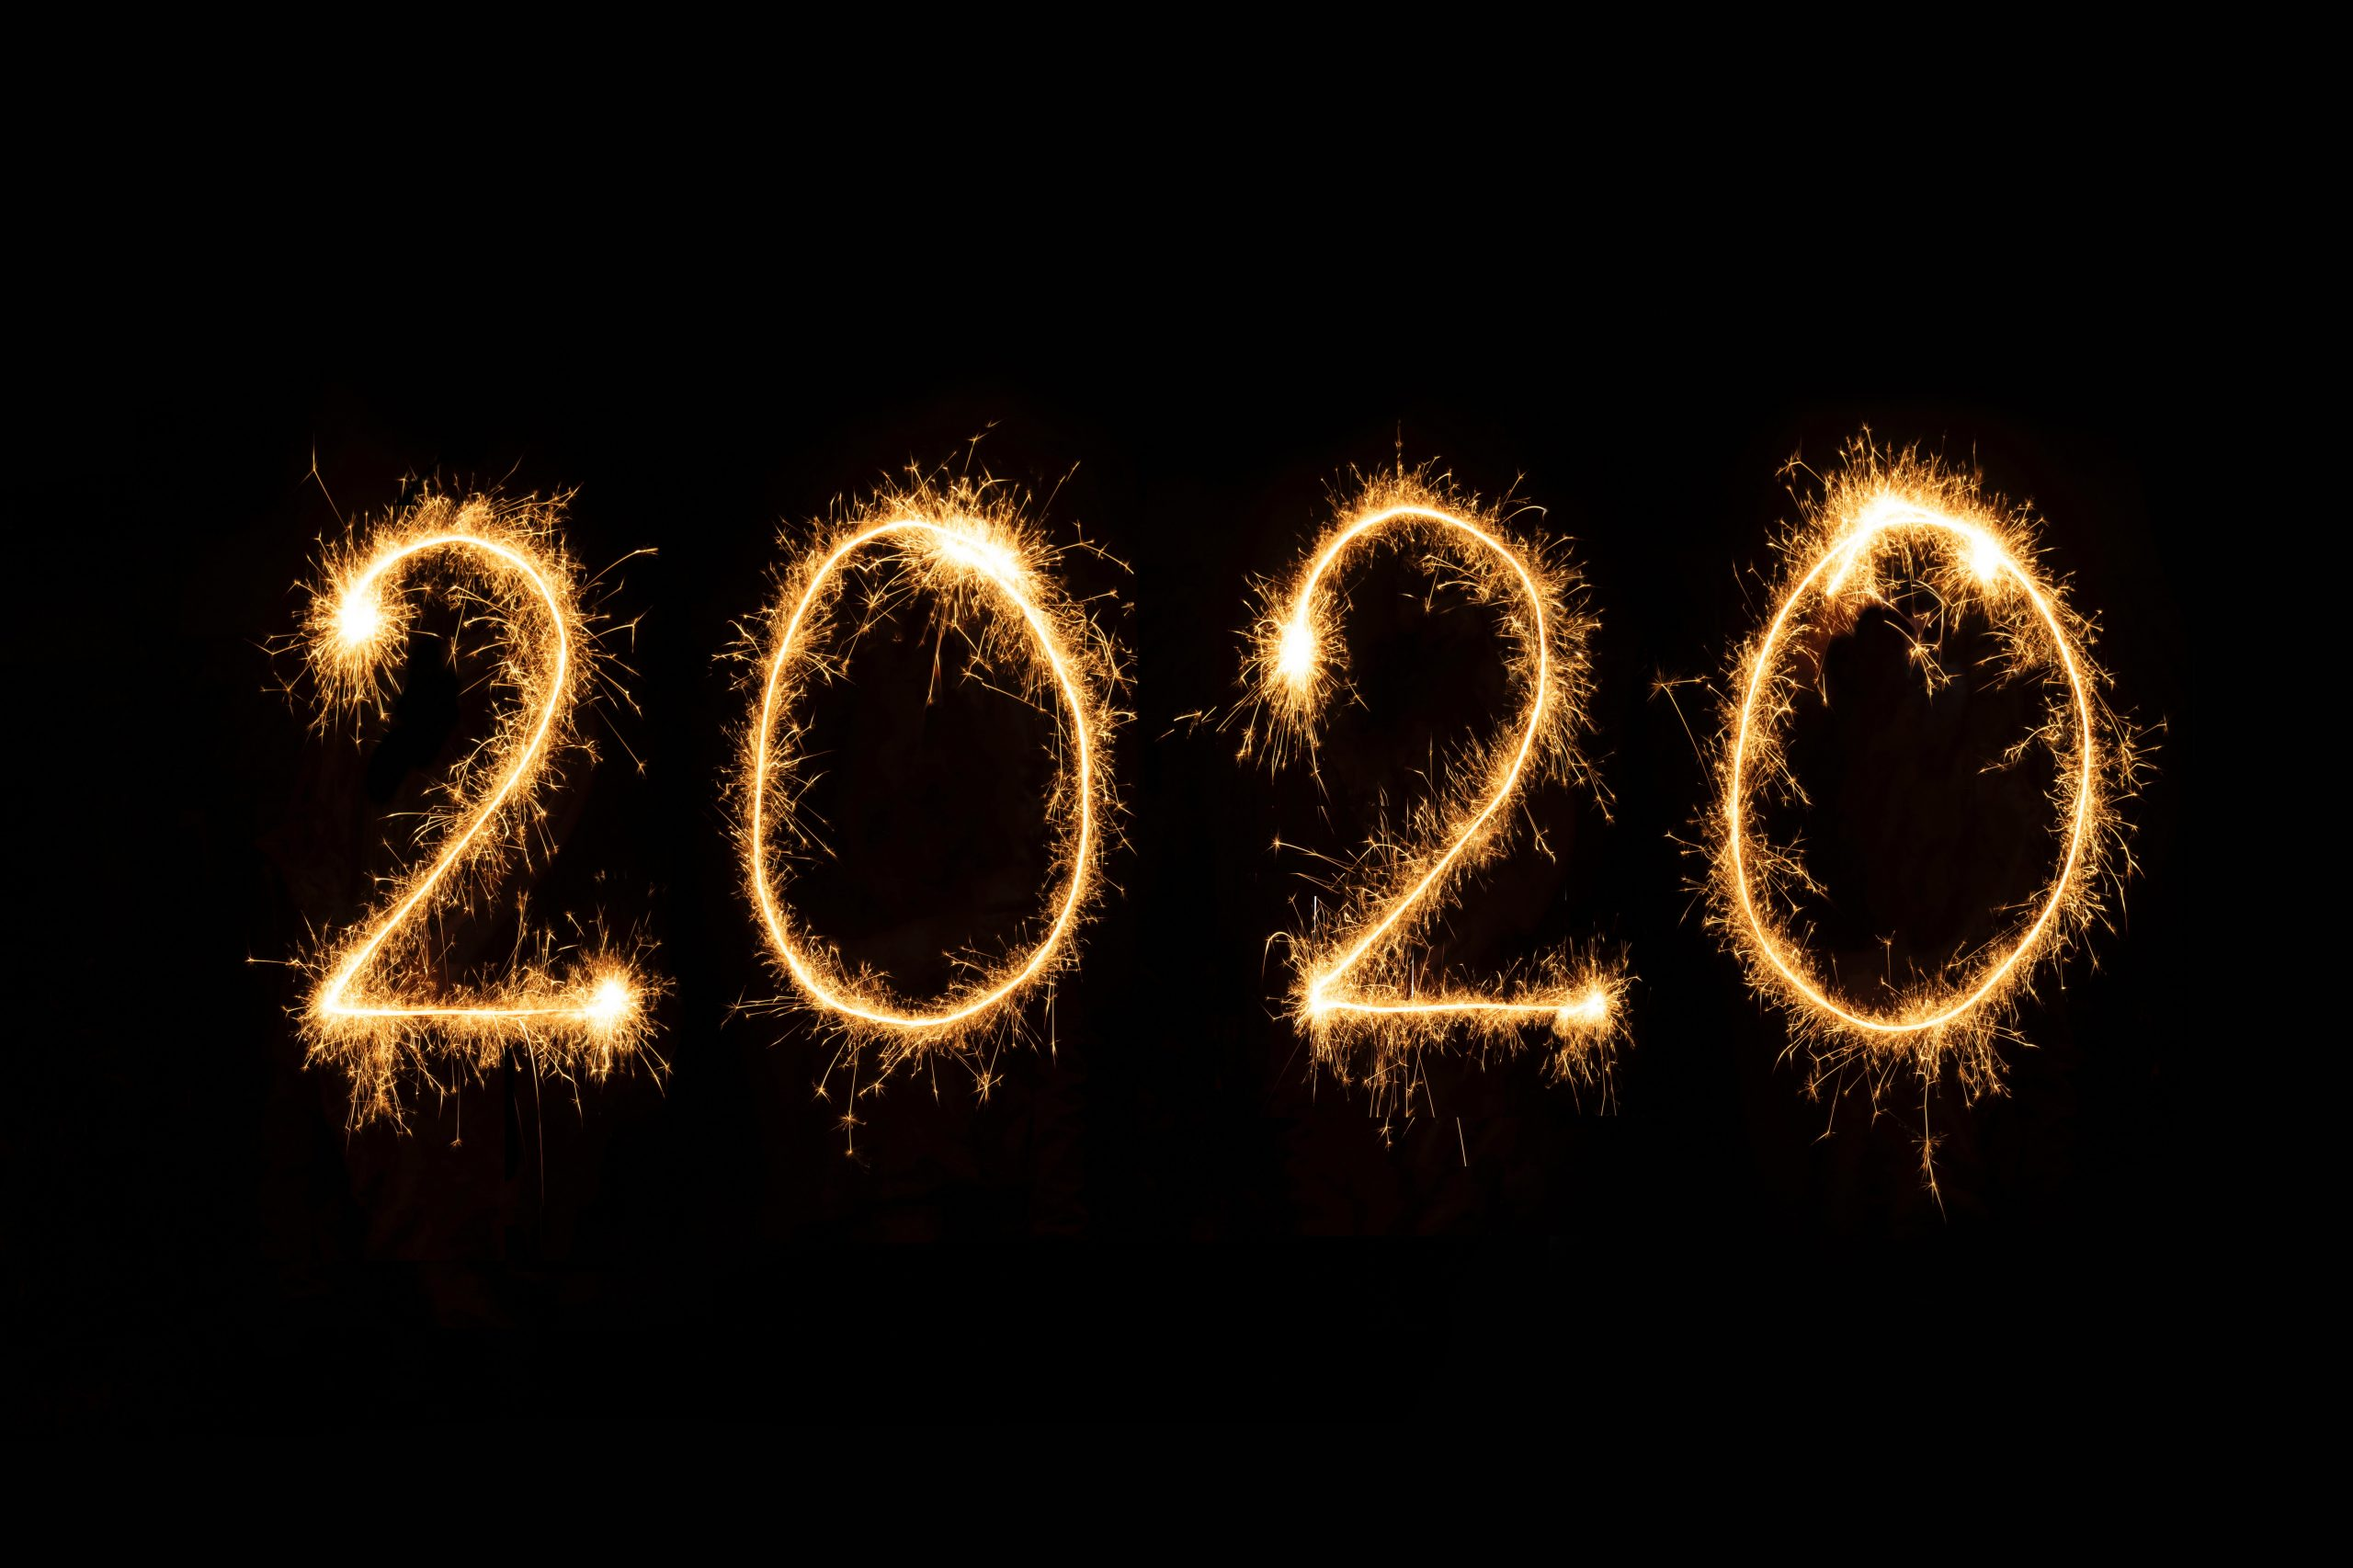 Goodbye 2019 and Hello 2020 - My Three and Me